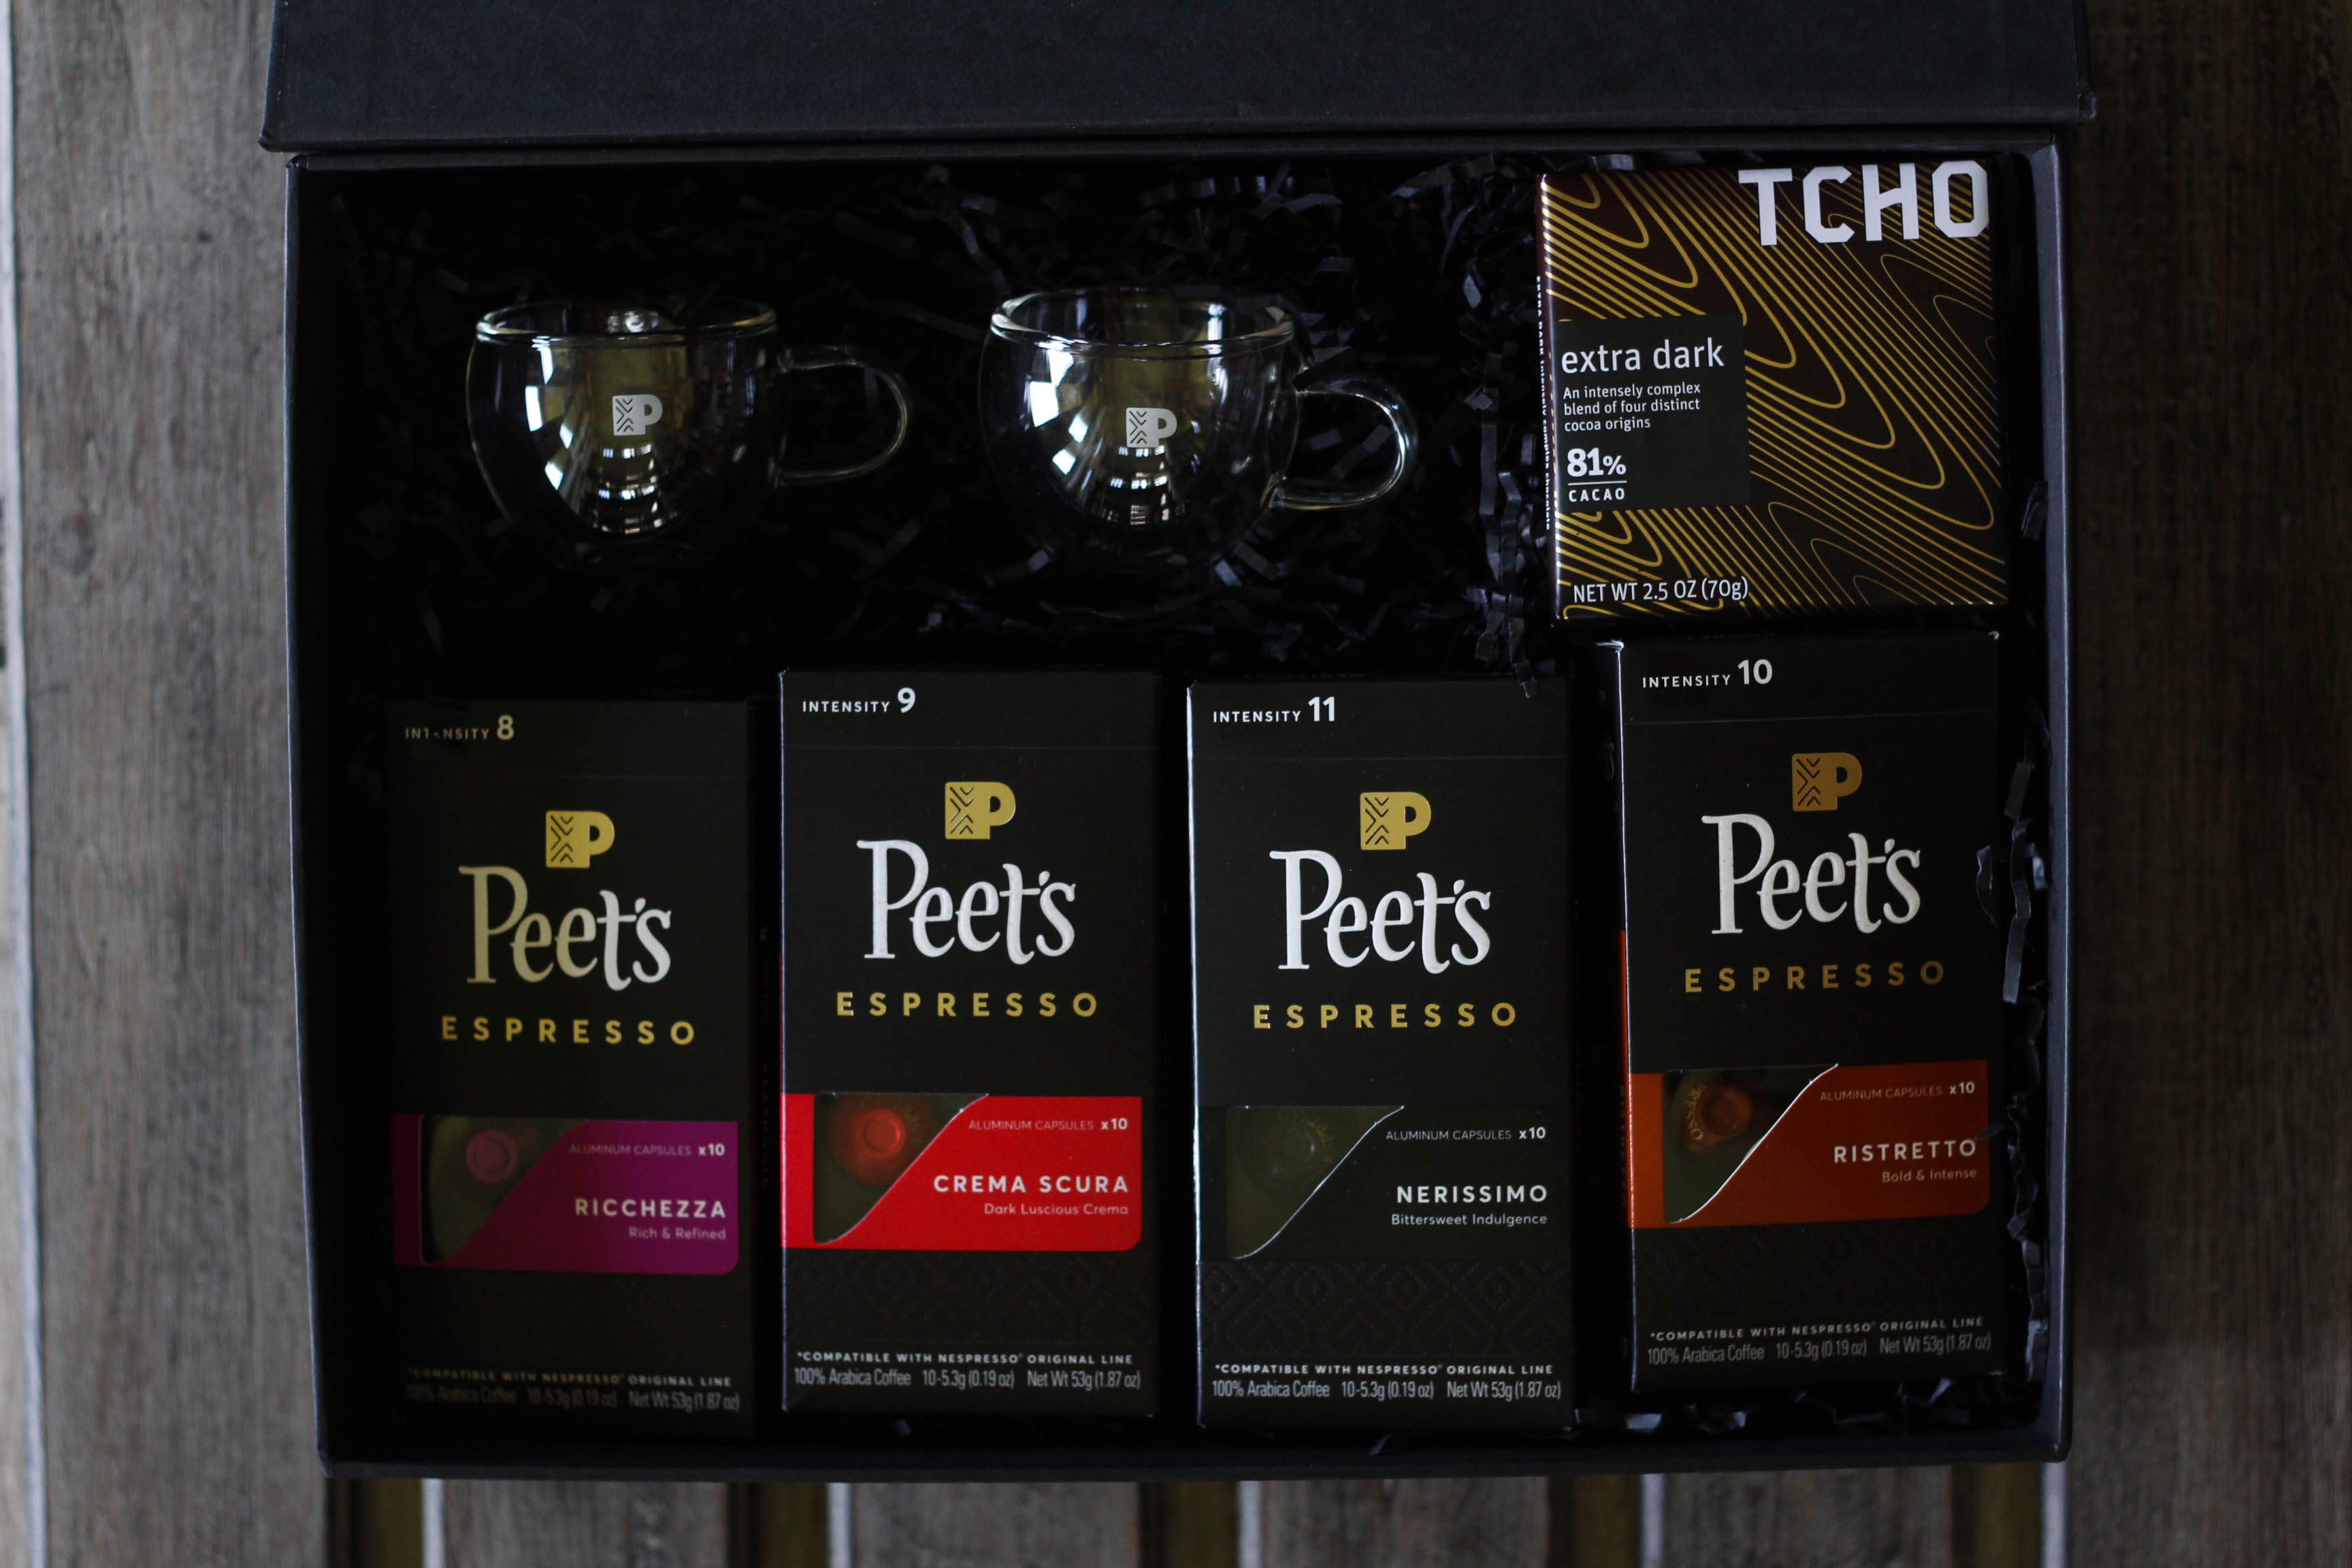 Peets Espresso Capsules for Nespresso Coffee Bar 18 - Caffeine Fix with Peet's Espresso